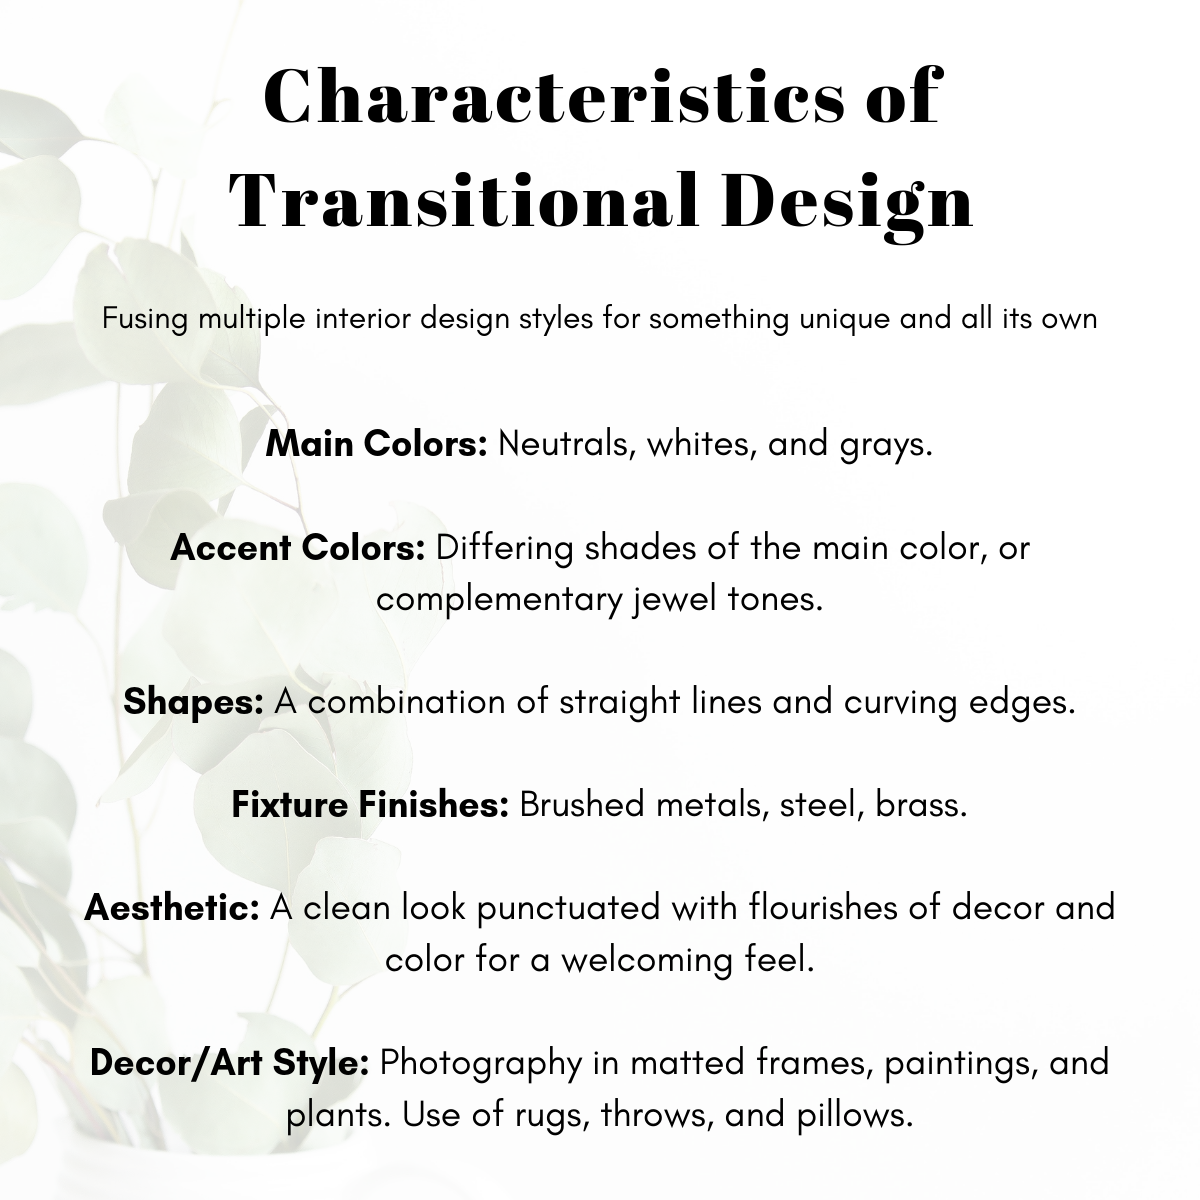 Characteristics of Transitional Design